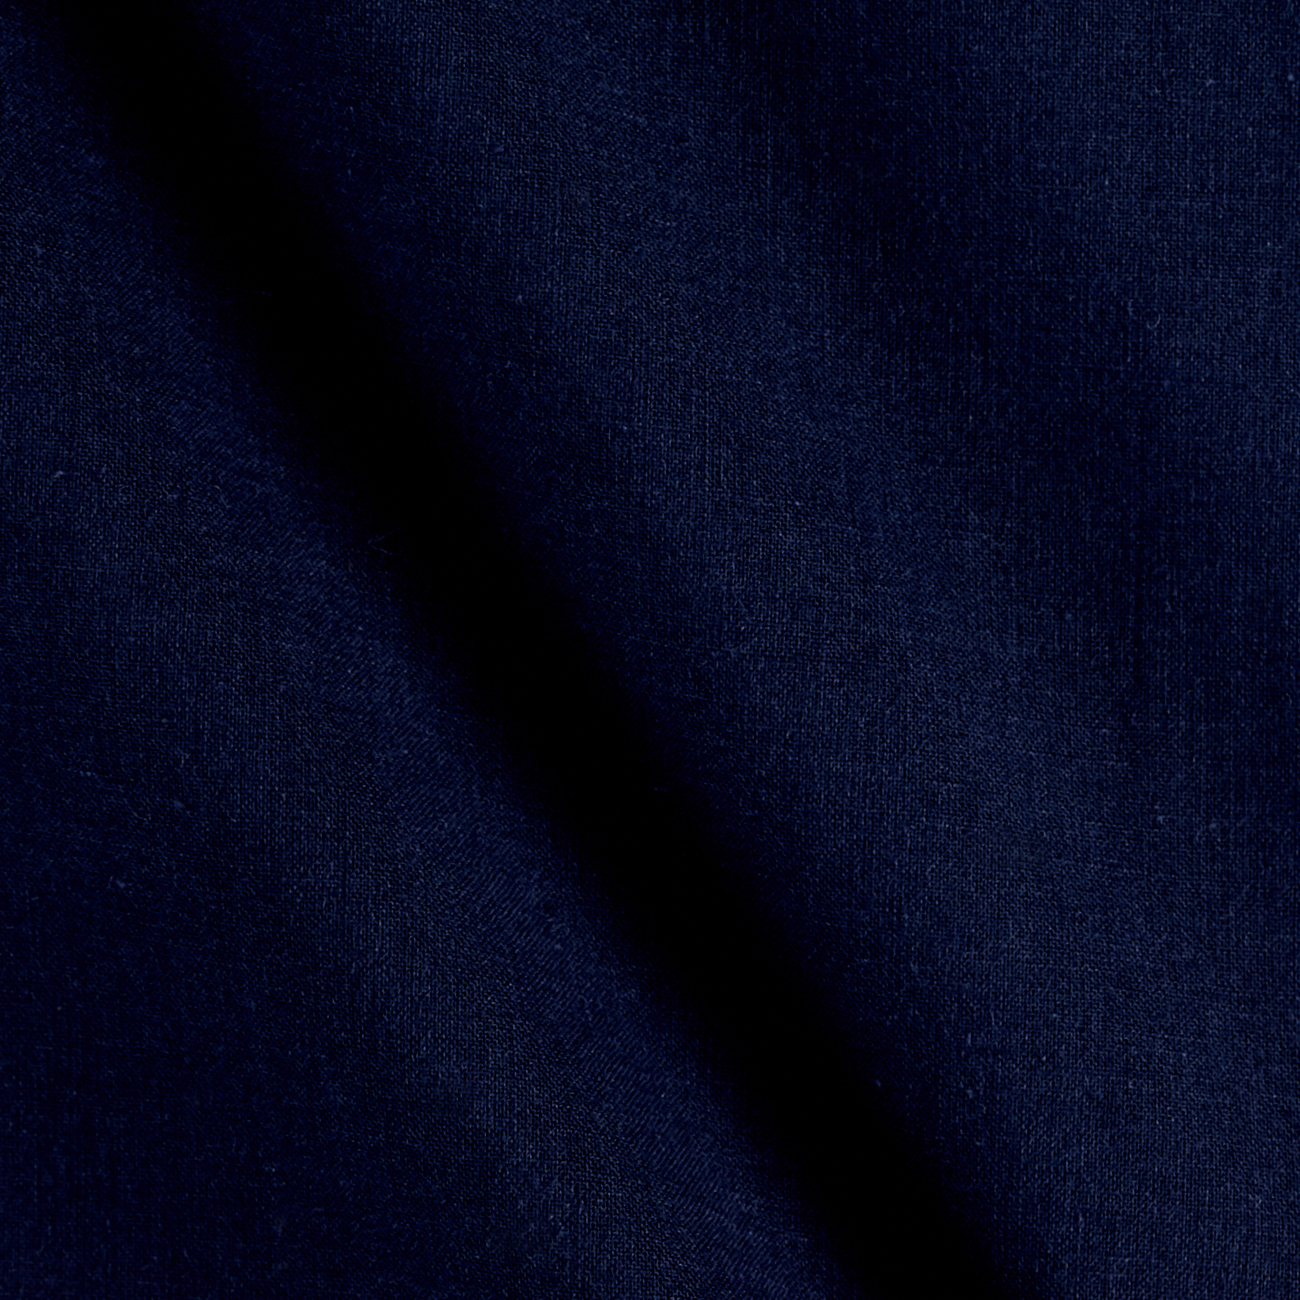 Cotton Lawn Navy Fabric by Stardom Specialty in USA